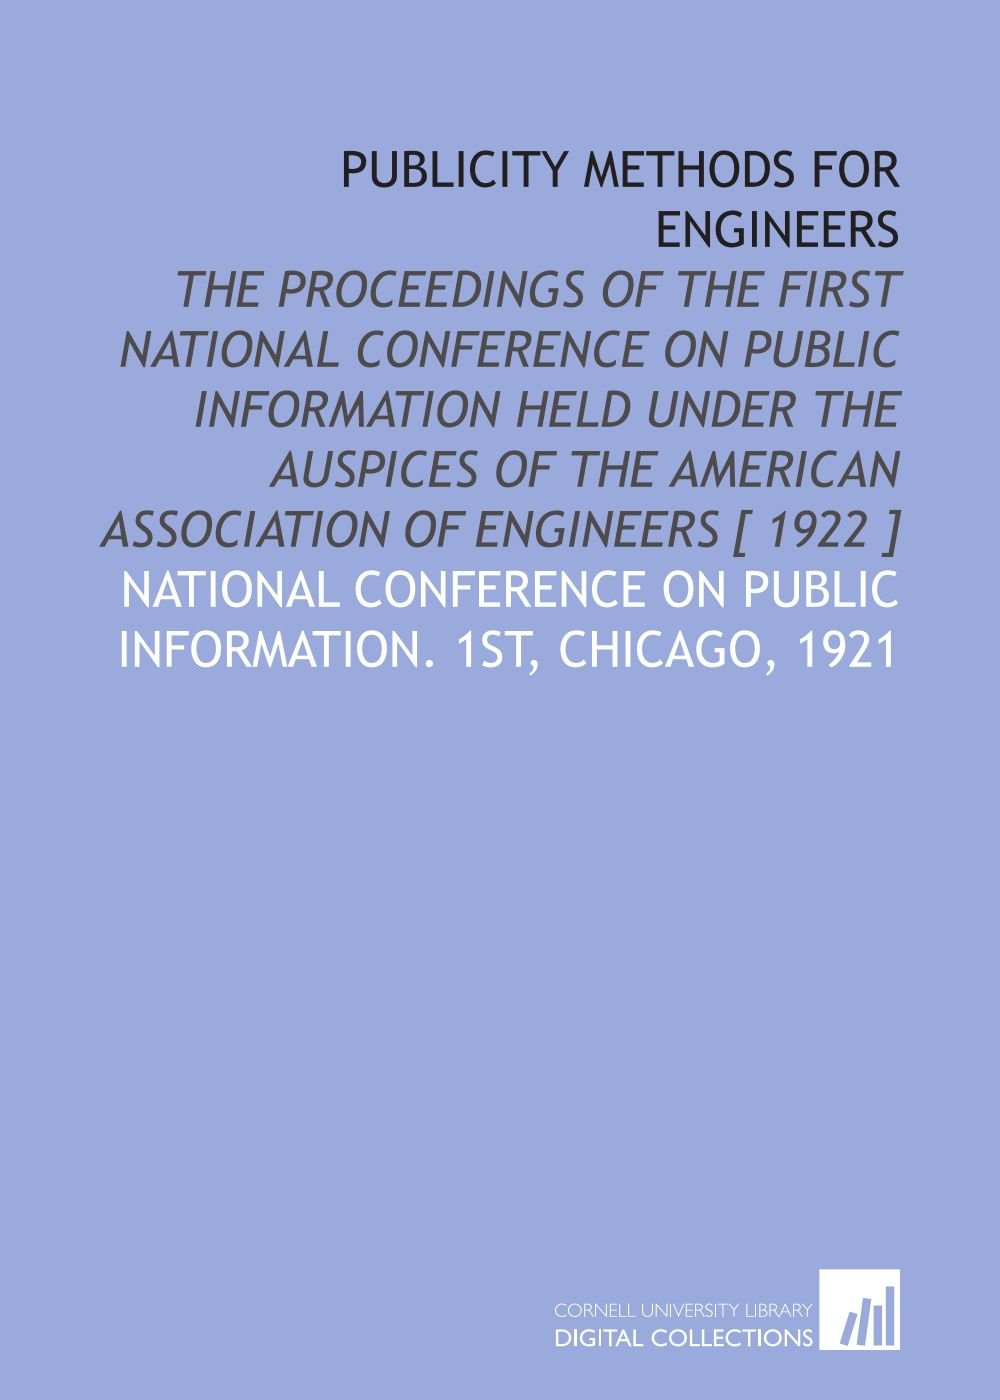 Download Publicity methods for engineers: the proceedings of the first National conference on public information held under the auspices of the American association of engineers [ 1922 ] pdf